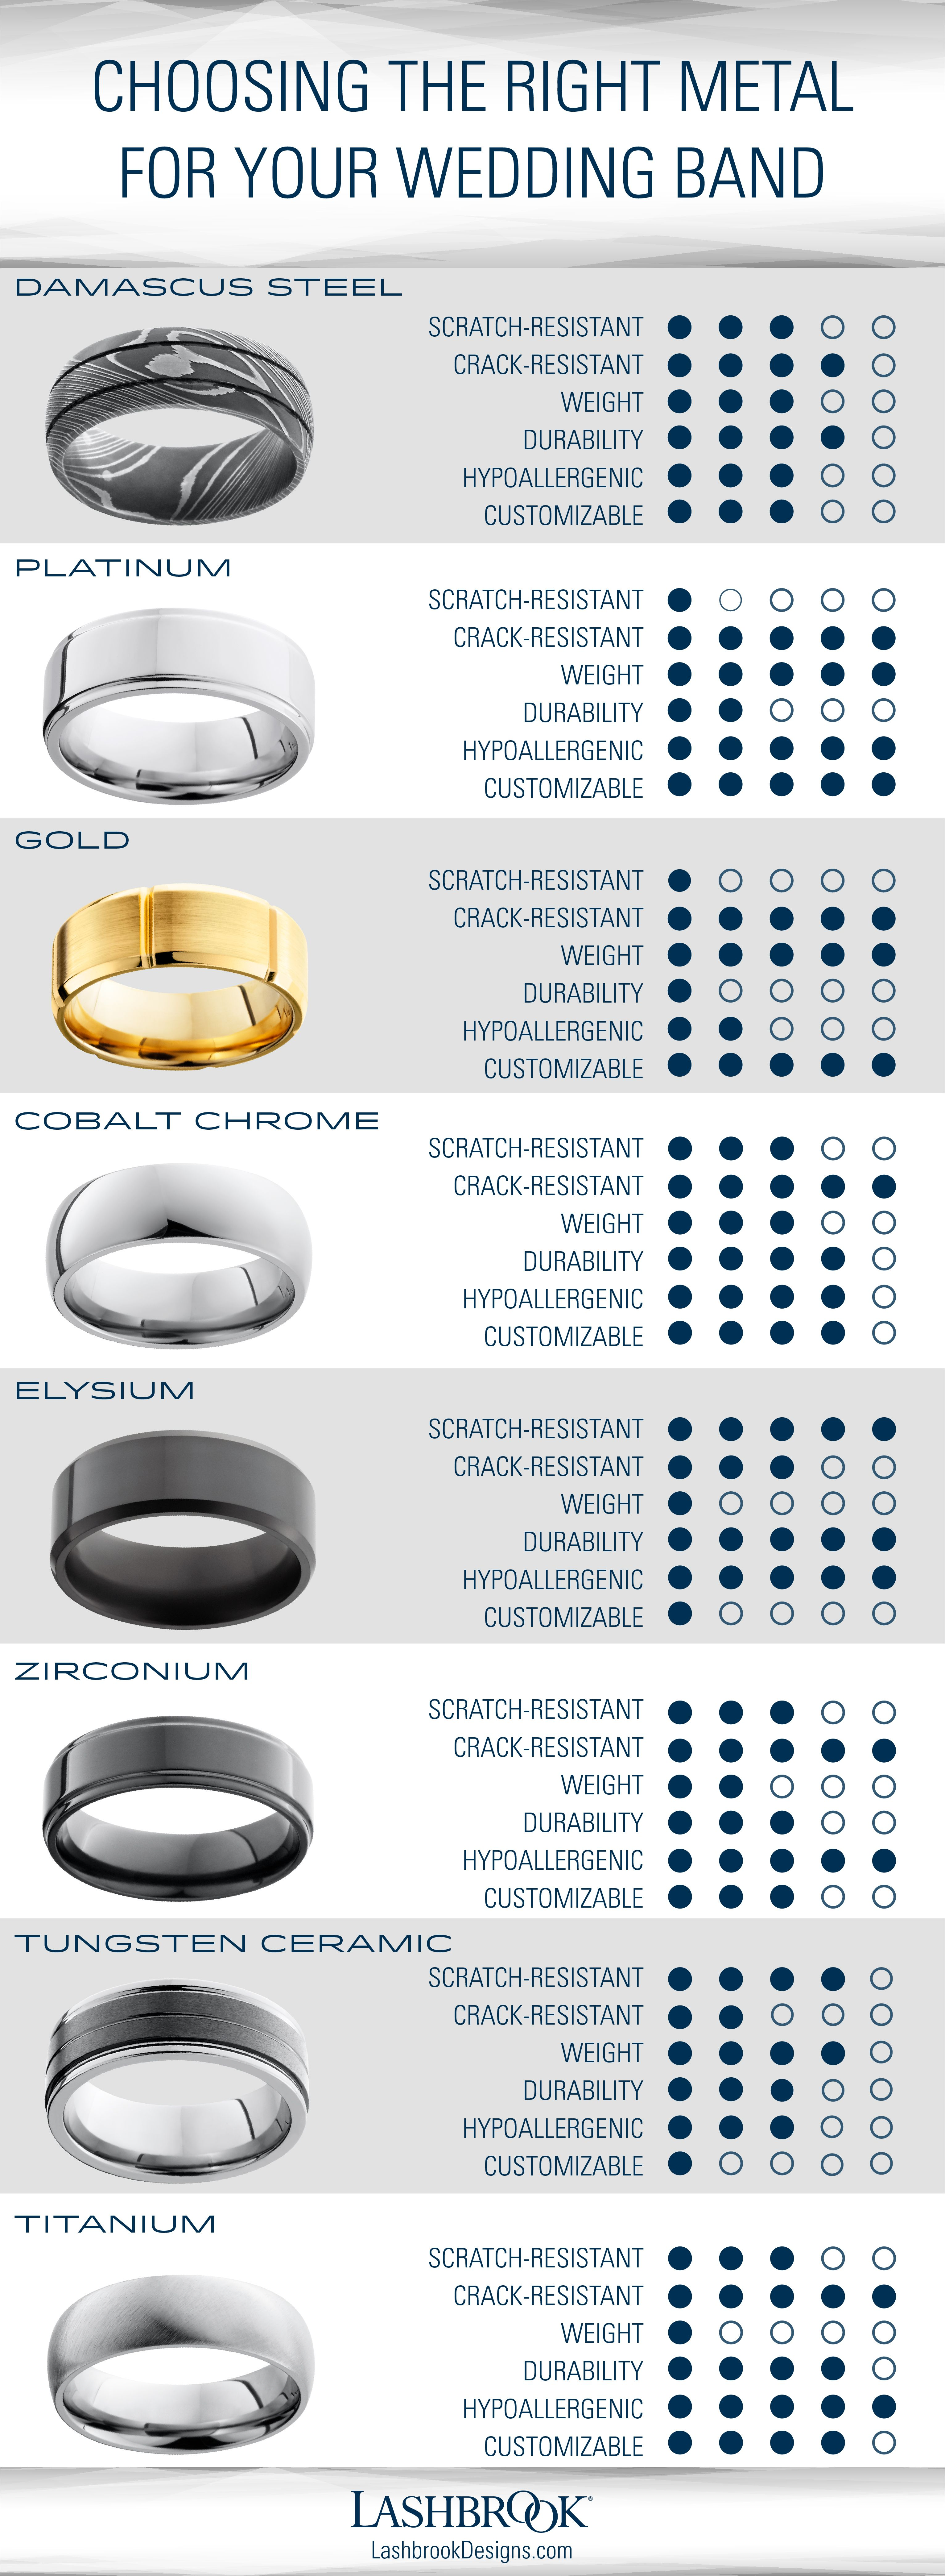 bdbd0fe17767a0 There are more wedding band metal options now than ever before. Which one  best matches